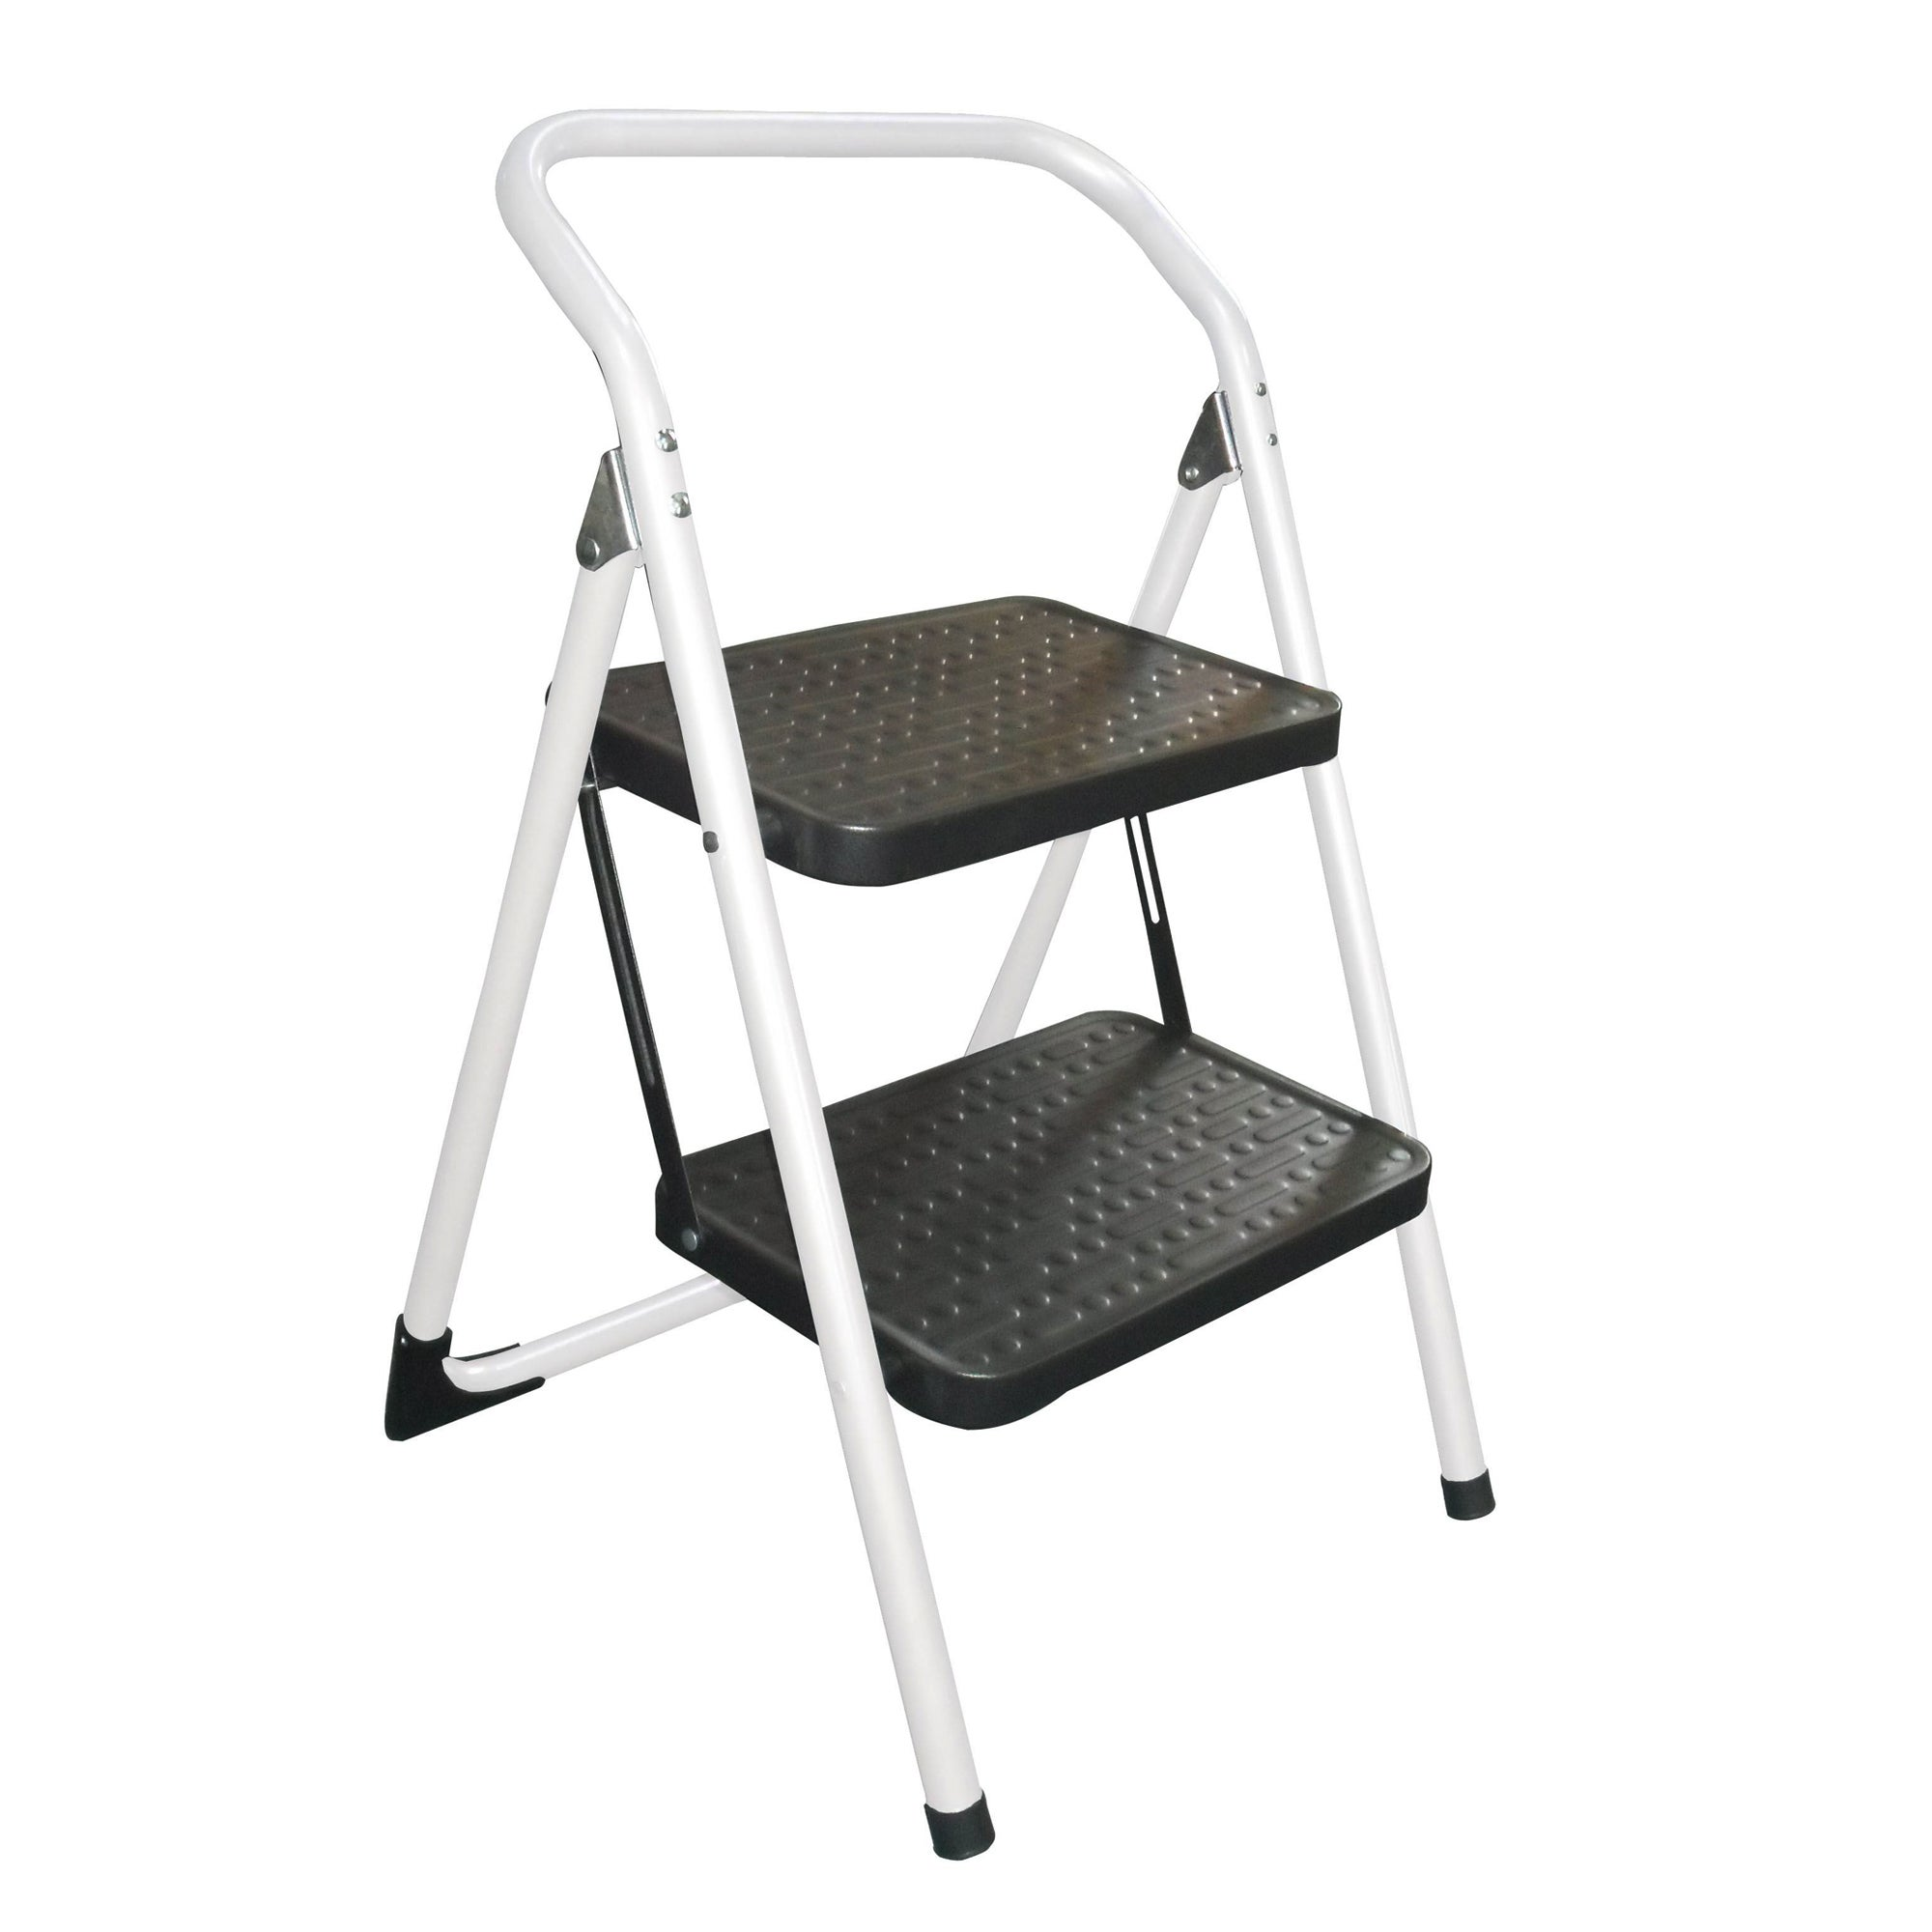 Utility Room 2 Step Ladder